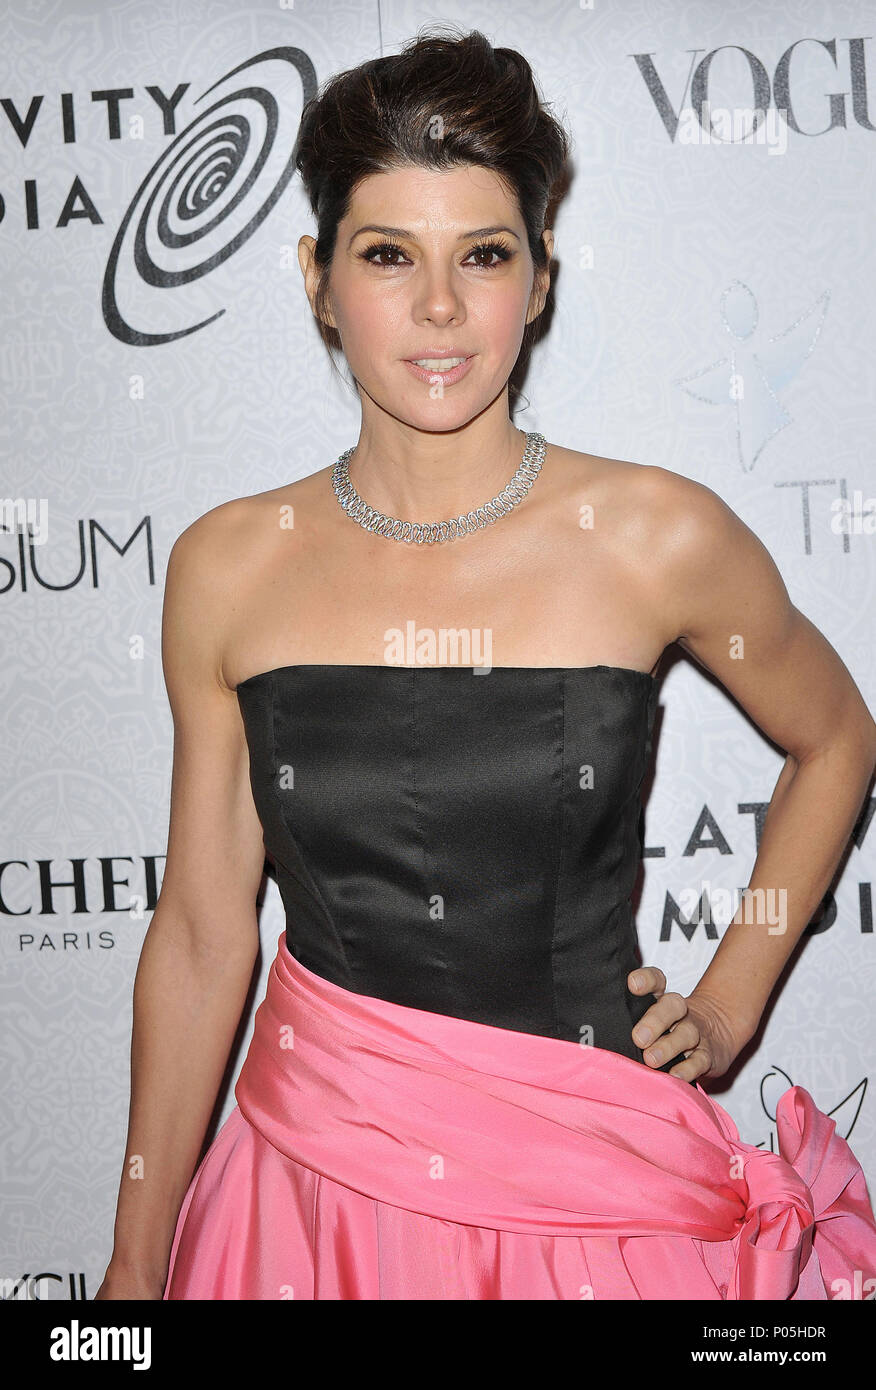 Marisa Tomei _30  - The Art of Elysium Gala at the Beverly Hilton In Los Angeles.Marisa Tomei _30 Red Carpet Event, Vertical, USA, Film Industry, Celebrities,  Photography, Bestof, Arts Culture and Entertainment, Topix Celebrities fashion /  Vertical, Best of, Event in Hollywood Life - California,  Red Carpet and backstage, USA, Film Industry, Celebrities,  movie celebrities, TV celebrities, Music celebrities, Photography, Bestof, Arts Culture and Entertainment,  Topix, vertical, one person,, from the year , 2010, inquiry tsuni@Gamma-USA.com - Three Quarters - Stock Image